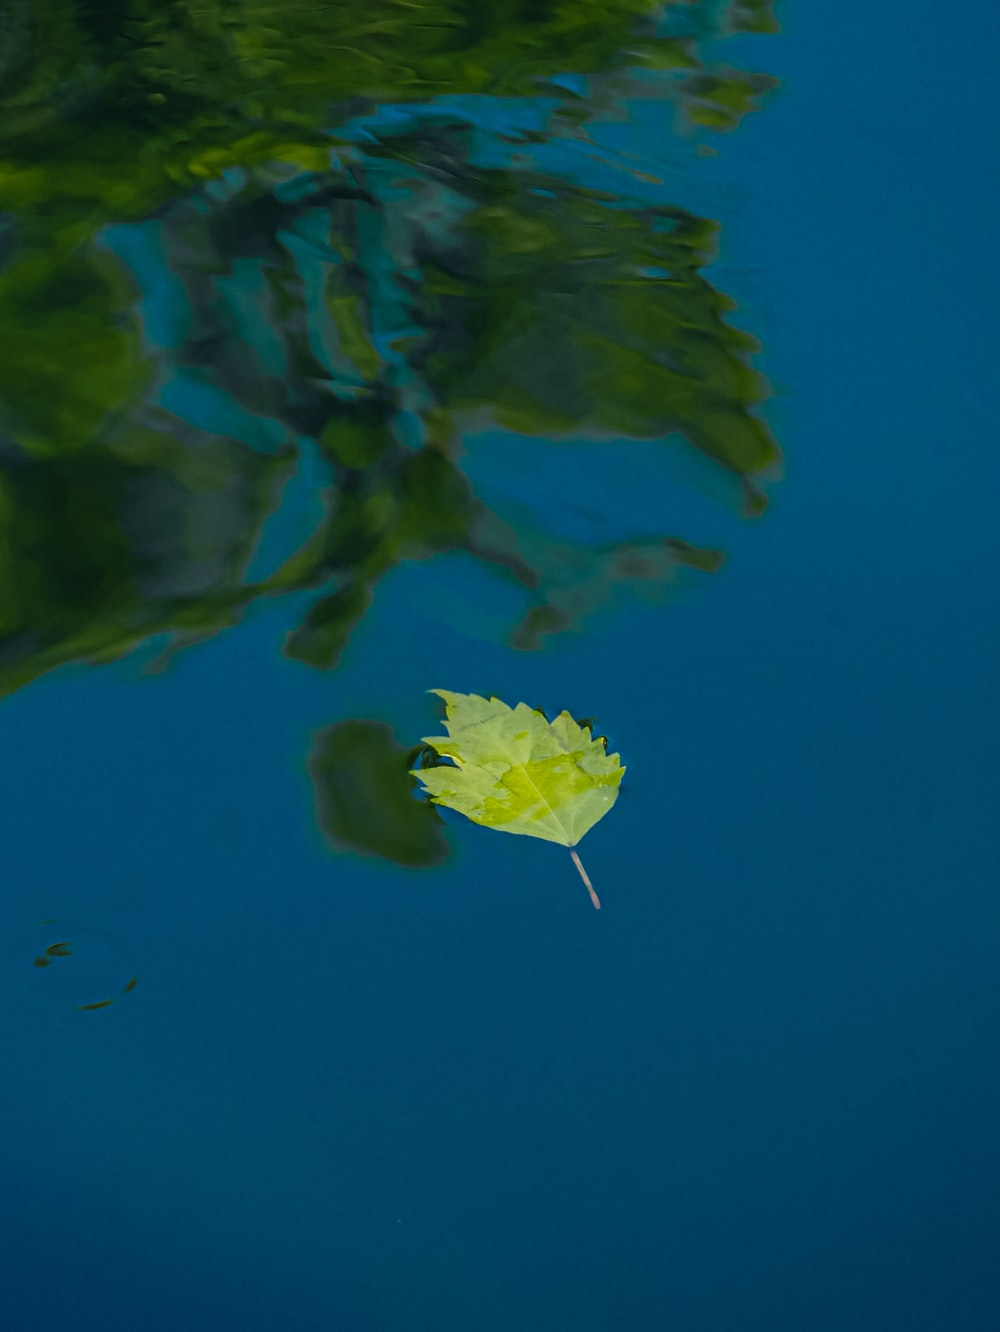 green leaf floating on water